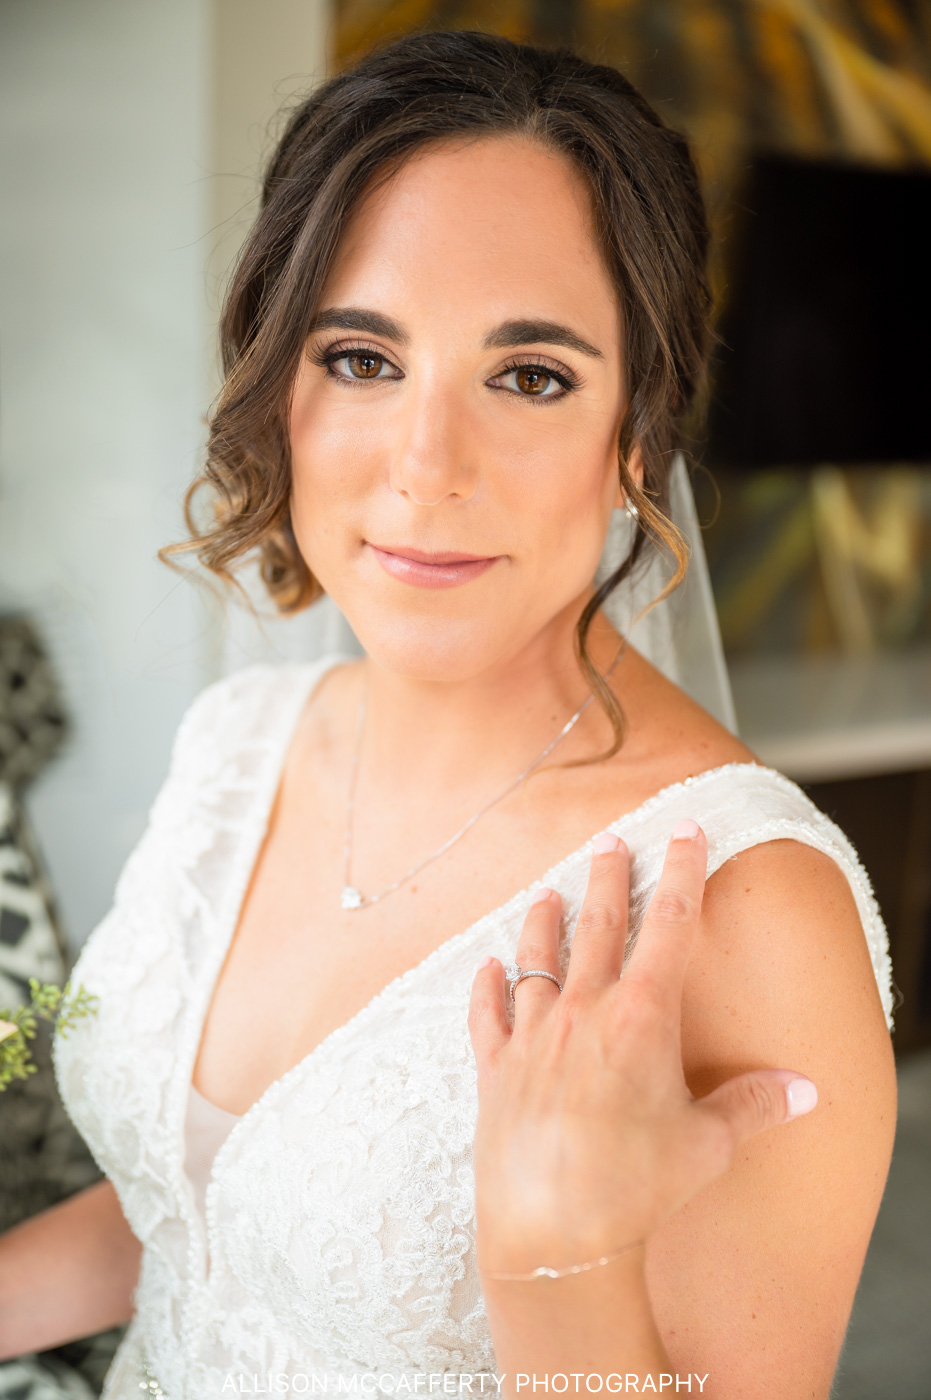 The Lucy Philly Wedding Photo